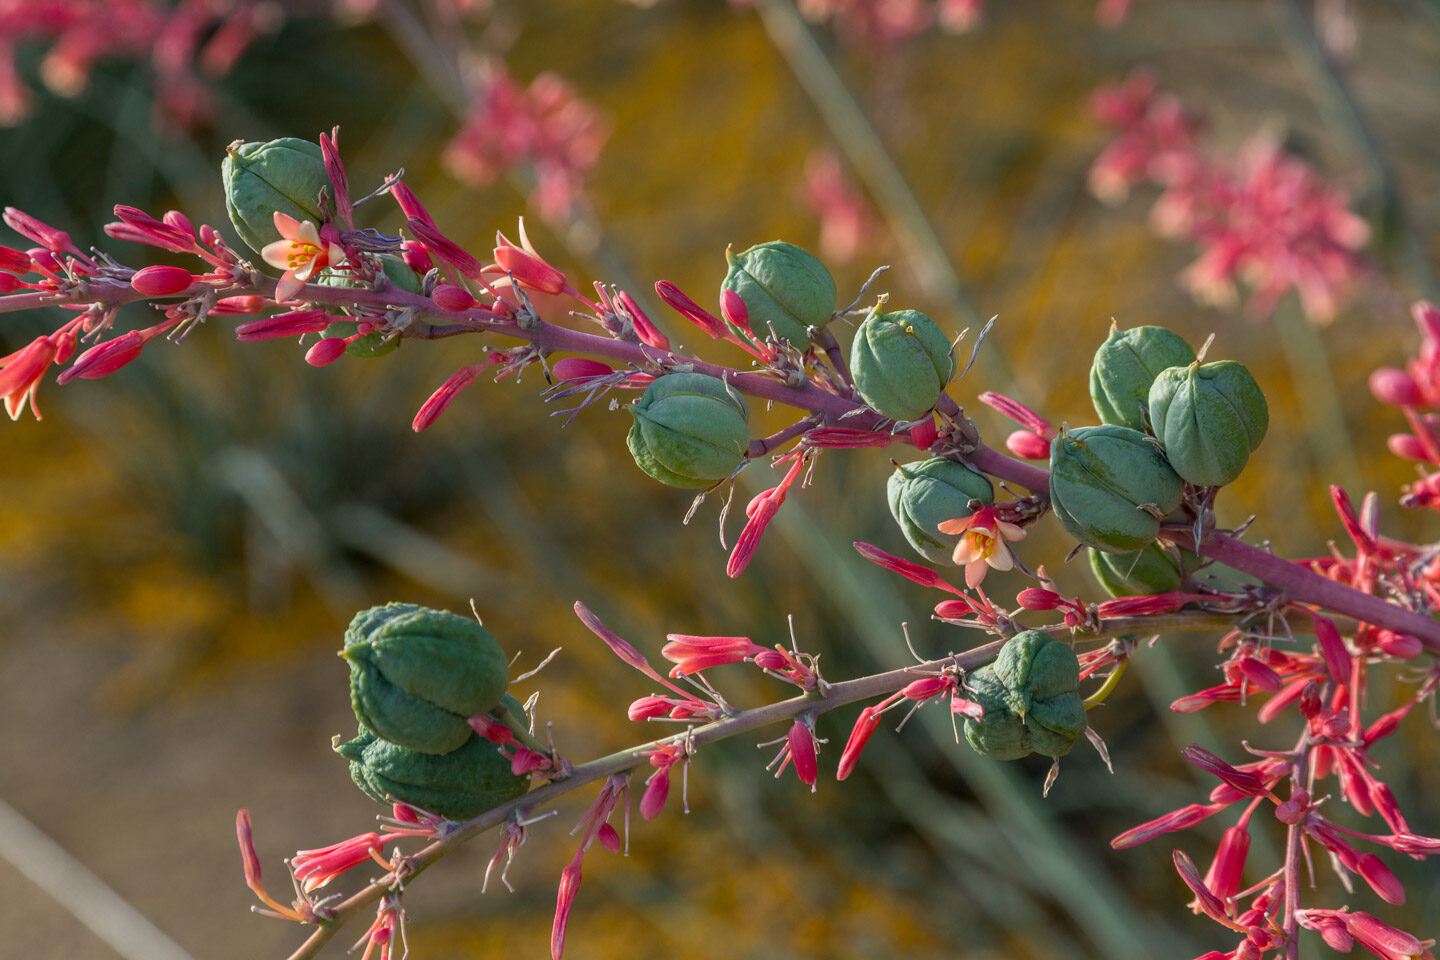 Flowers and seedpods along a stalk of the Red Hesperaloe.